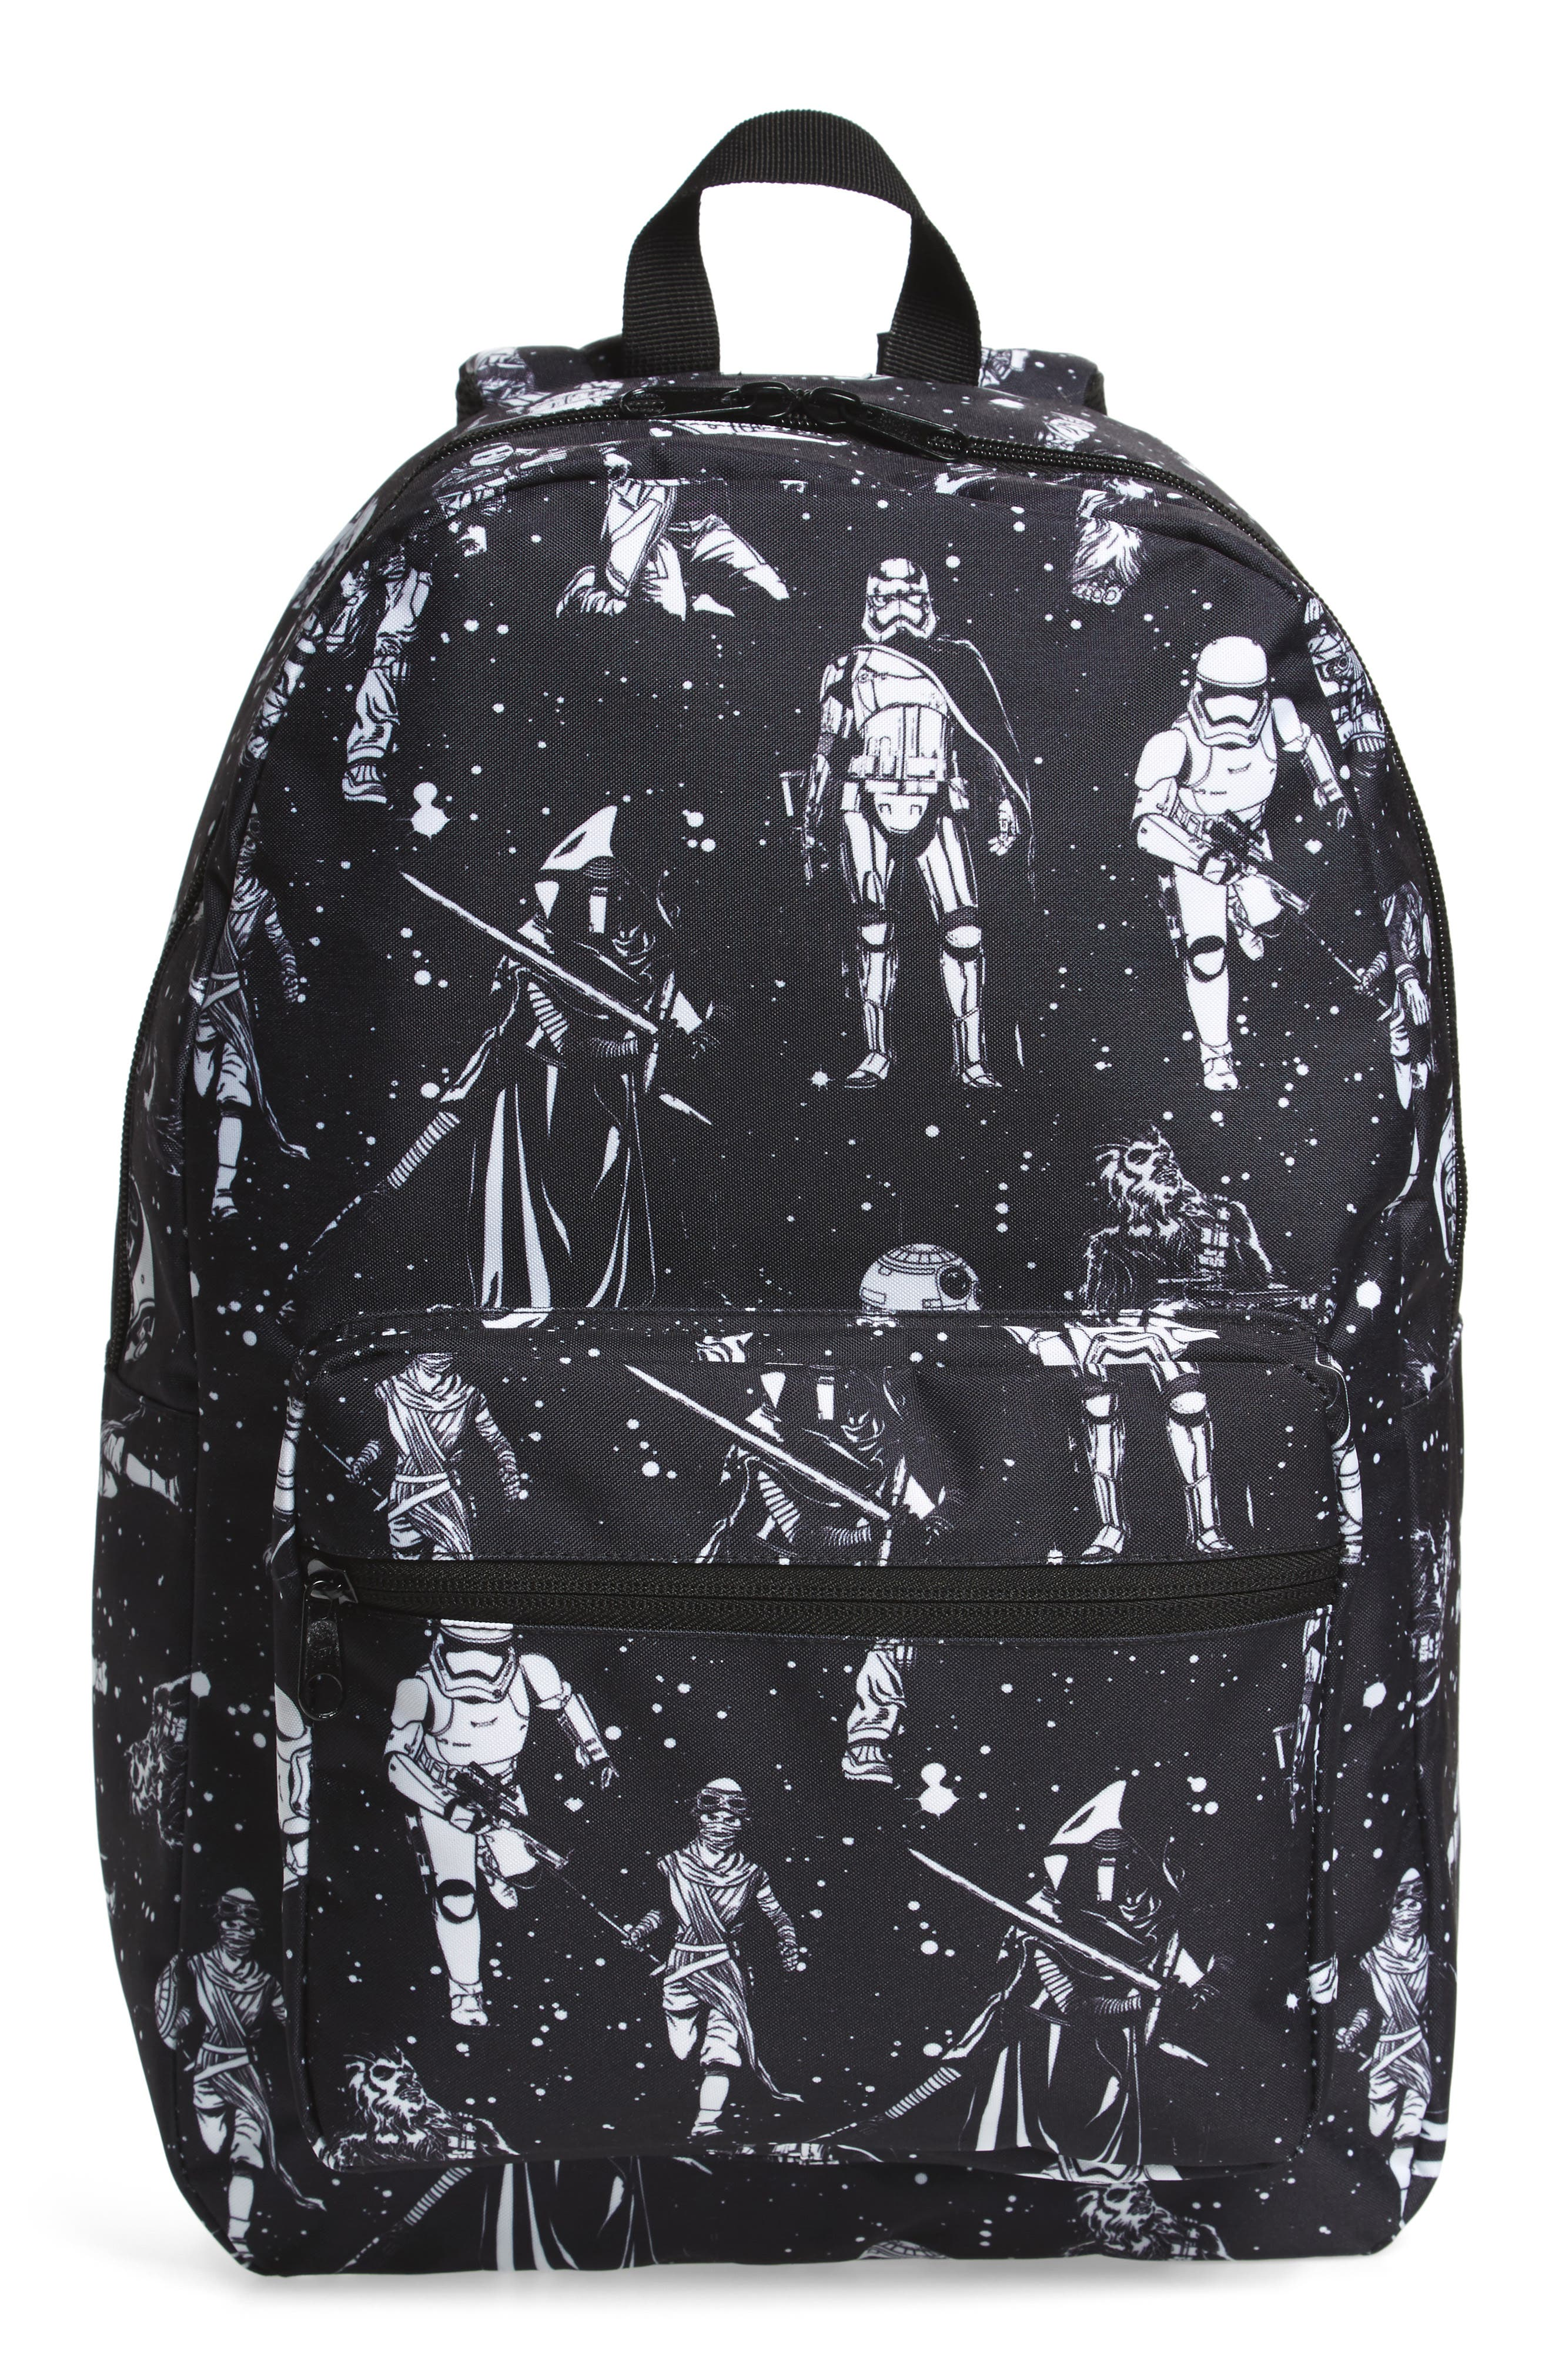 Star Wars The Force Awakens Black & White Space Backpack (Kids)